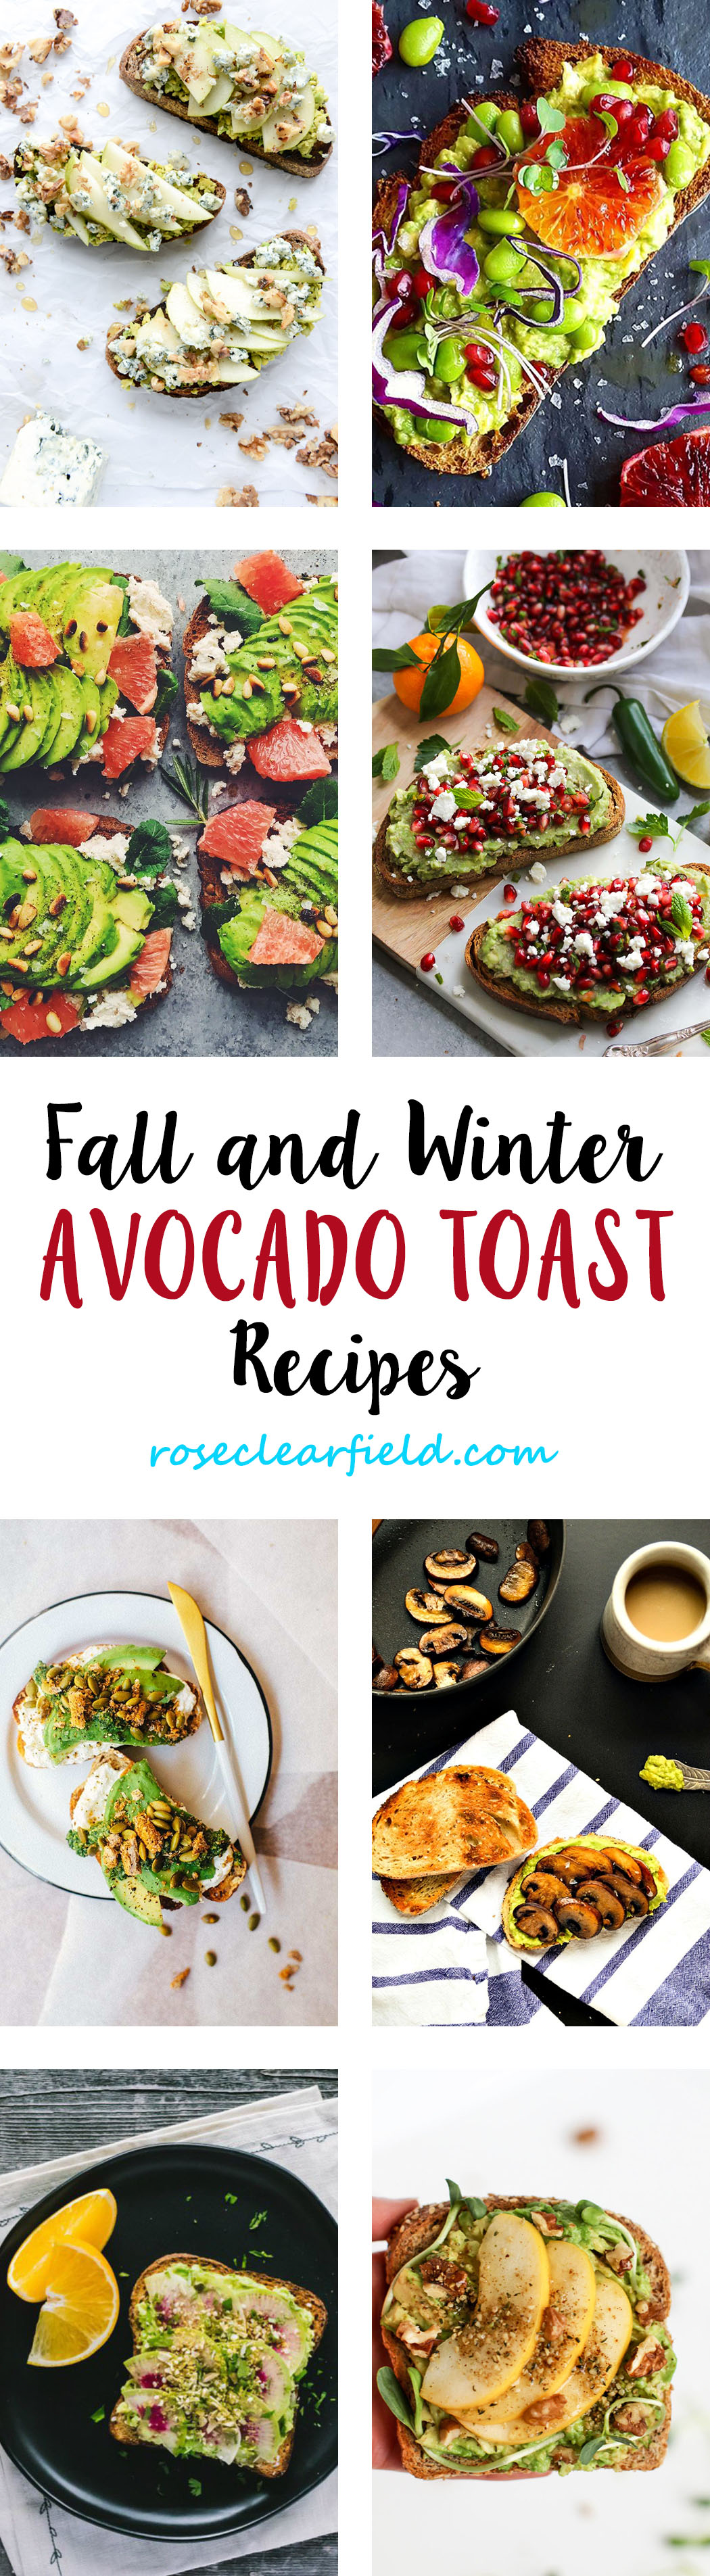 Fall and Winter Avocado Toast Recipes | https://www.roseclearfield.com